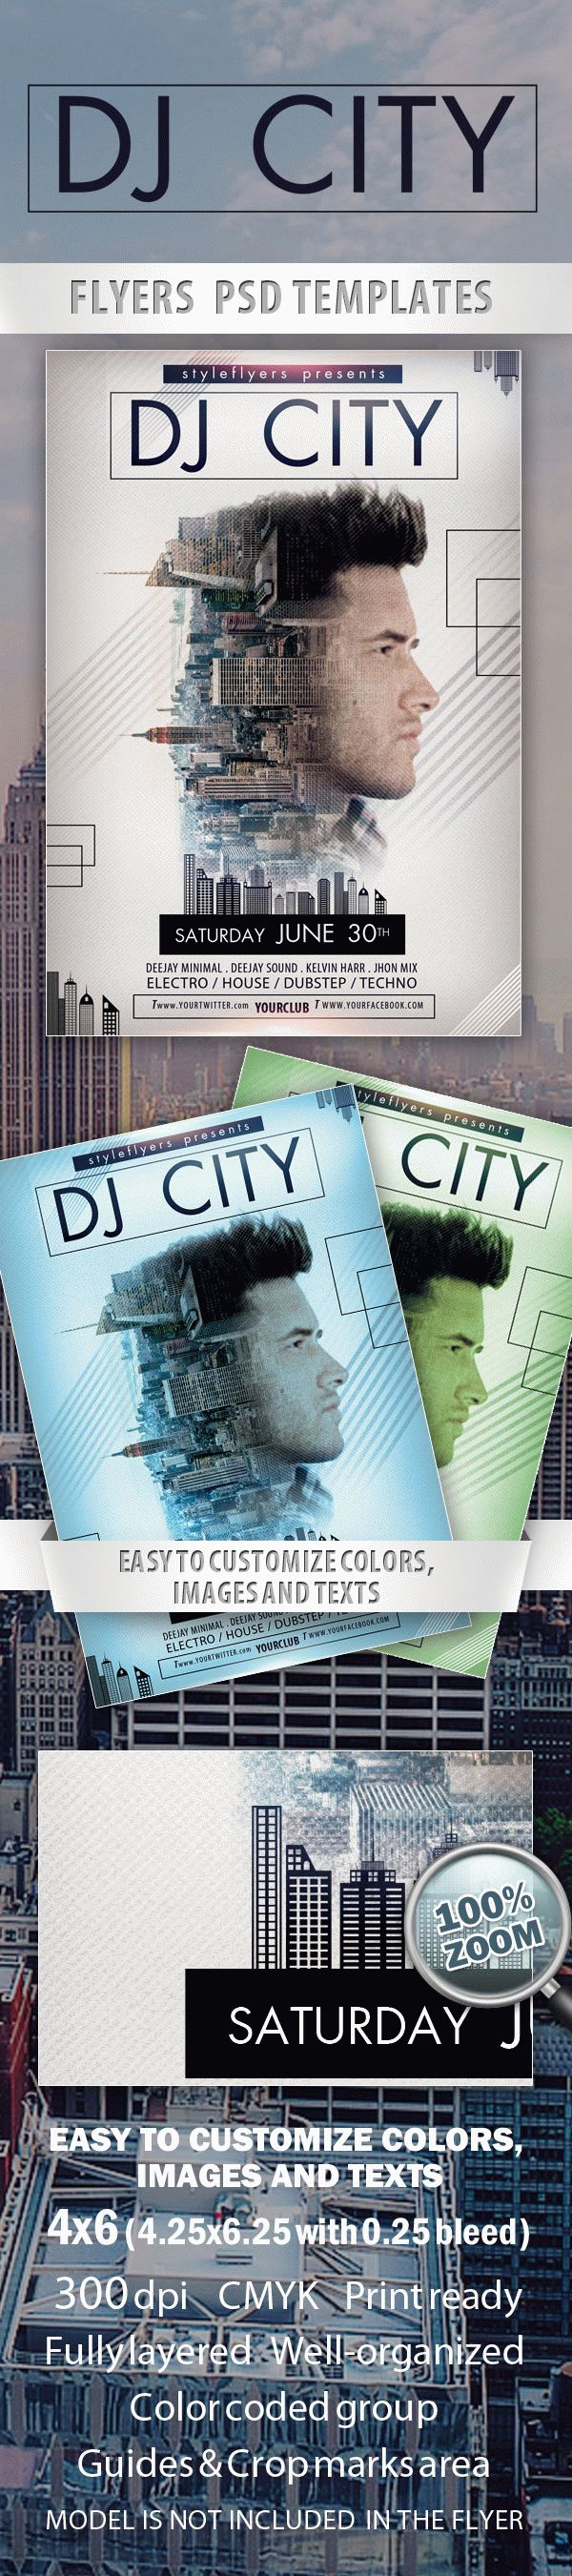 DJ City  Free Flyer PSD Template